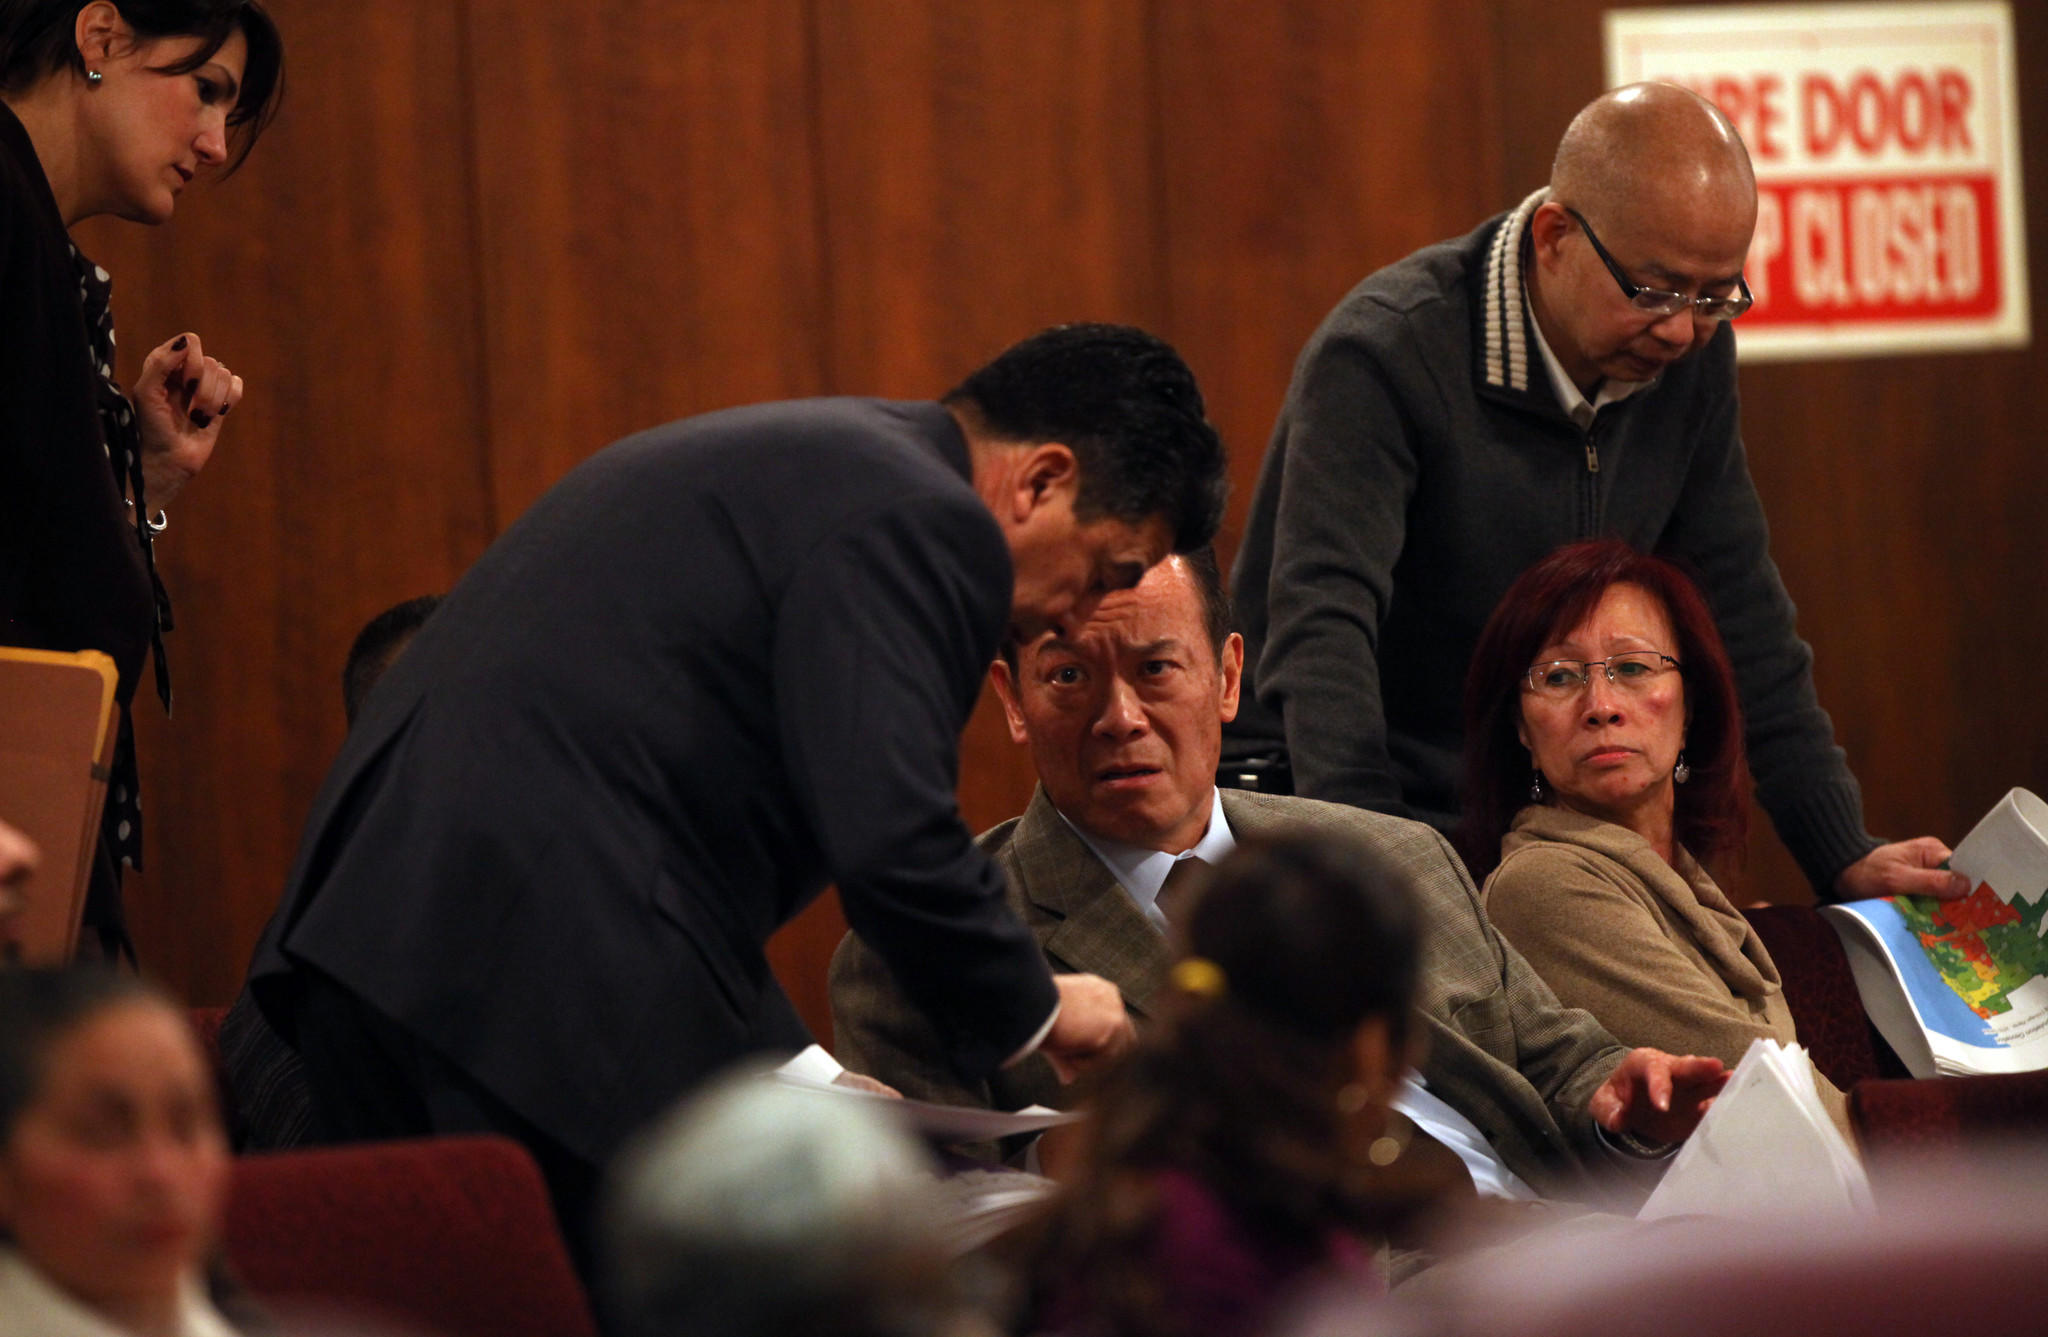 Ald. Daniel Solis, 25th, left, speaks with constituent Gene Lee, Chairman of the Chicago Chinatown Special Events Committee, during a hearing by the Chicago City Council Rules Committee Thursday Nov. 17, 2011 about city remapping.